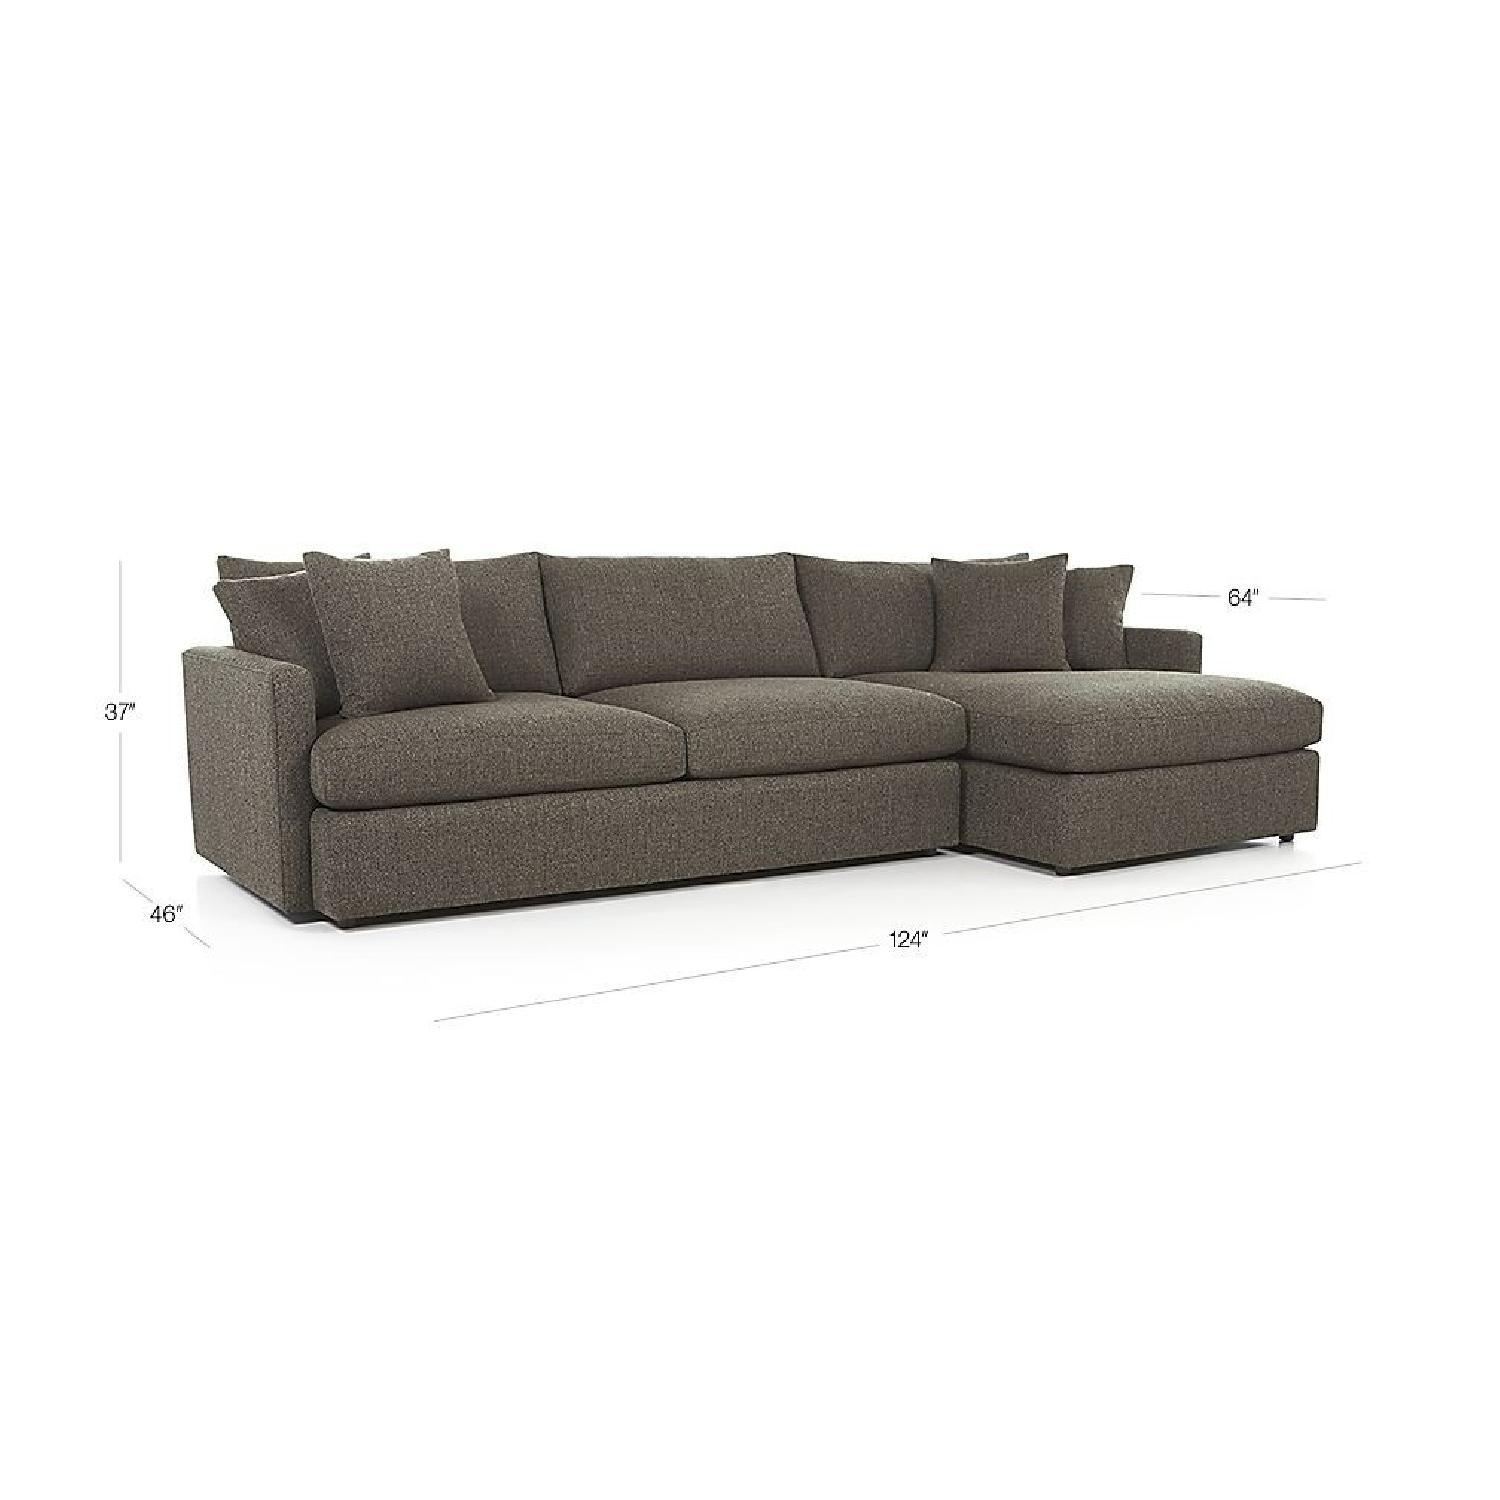 crate and barrel sofa sleeper review west elm dekalb leather reviews furniture couch twin